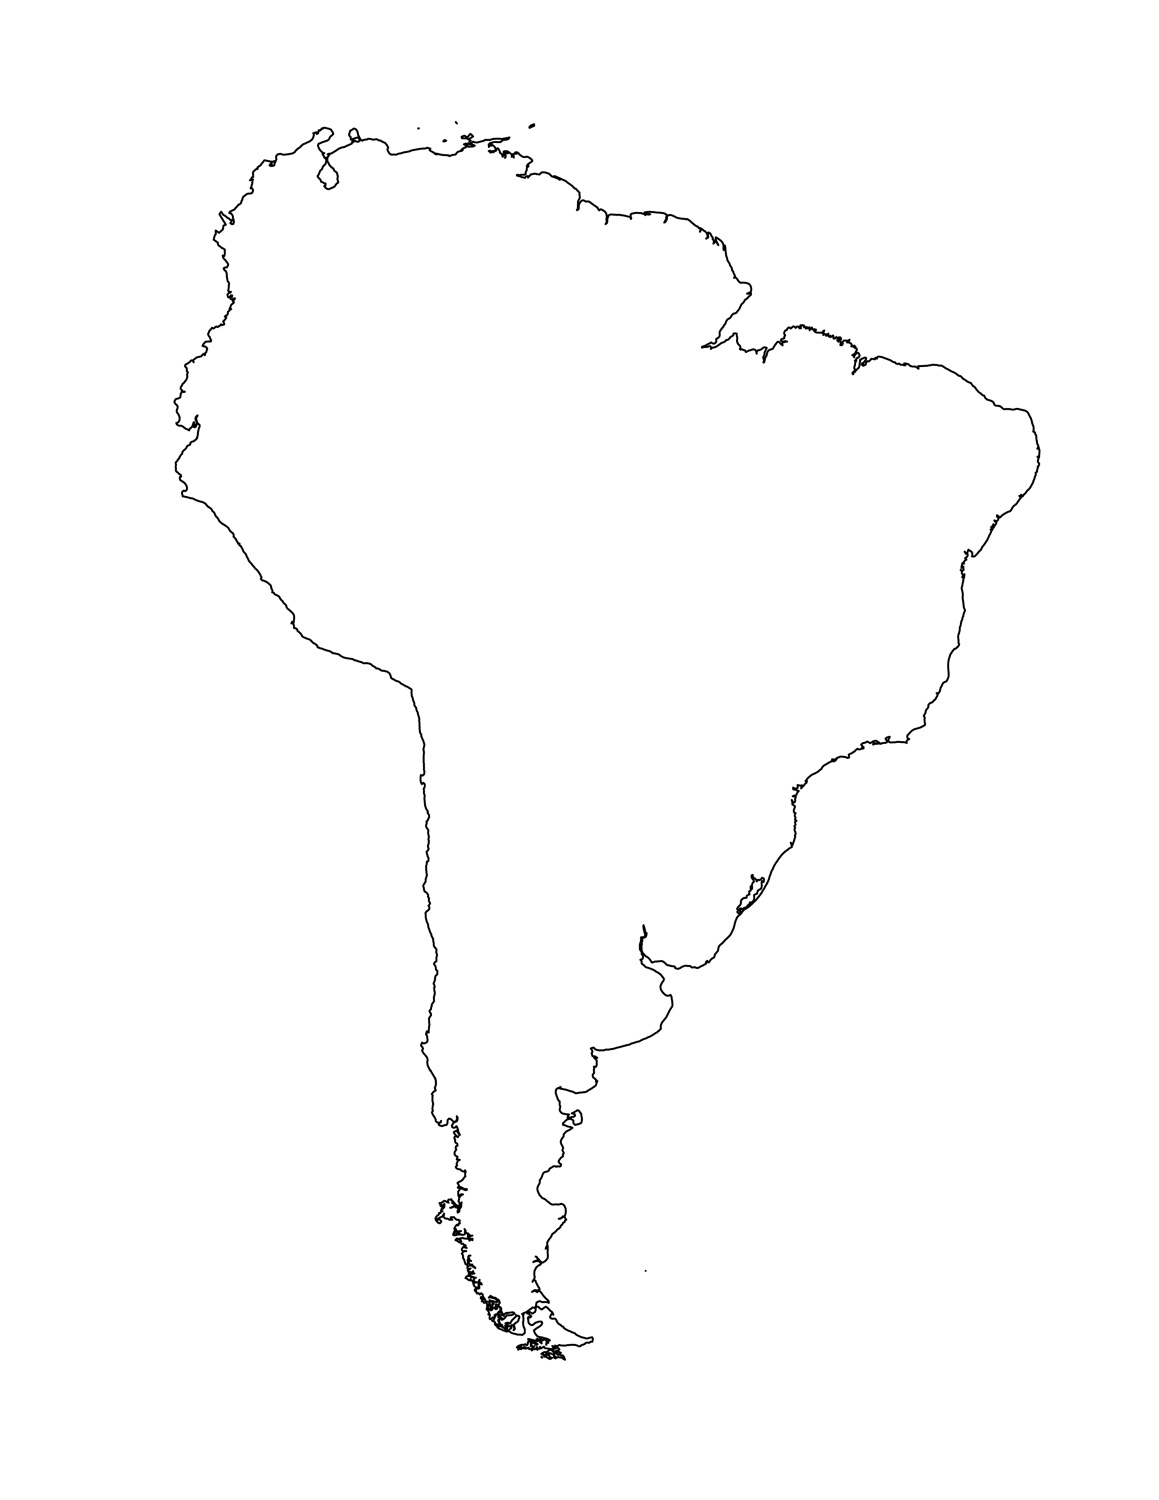 South America Outline Map Clipart - Clipart Kid